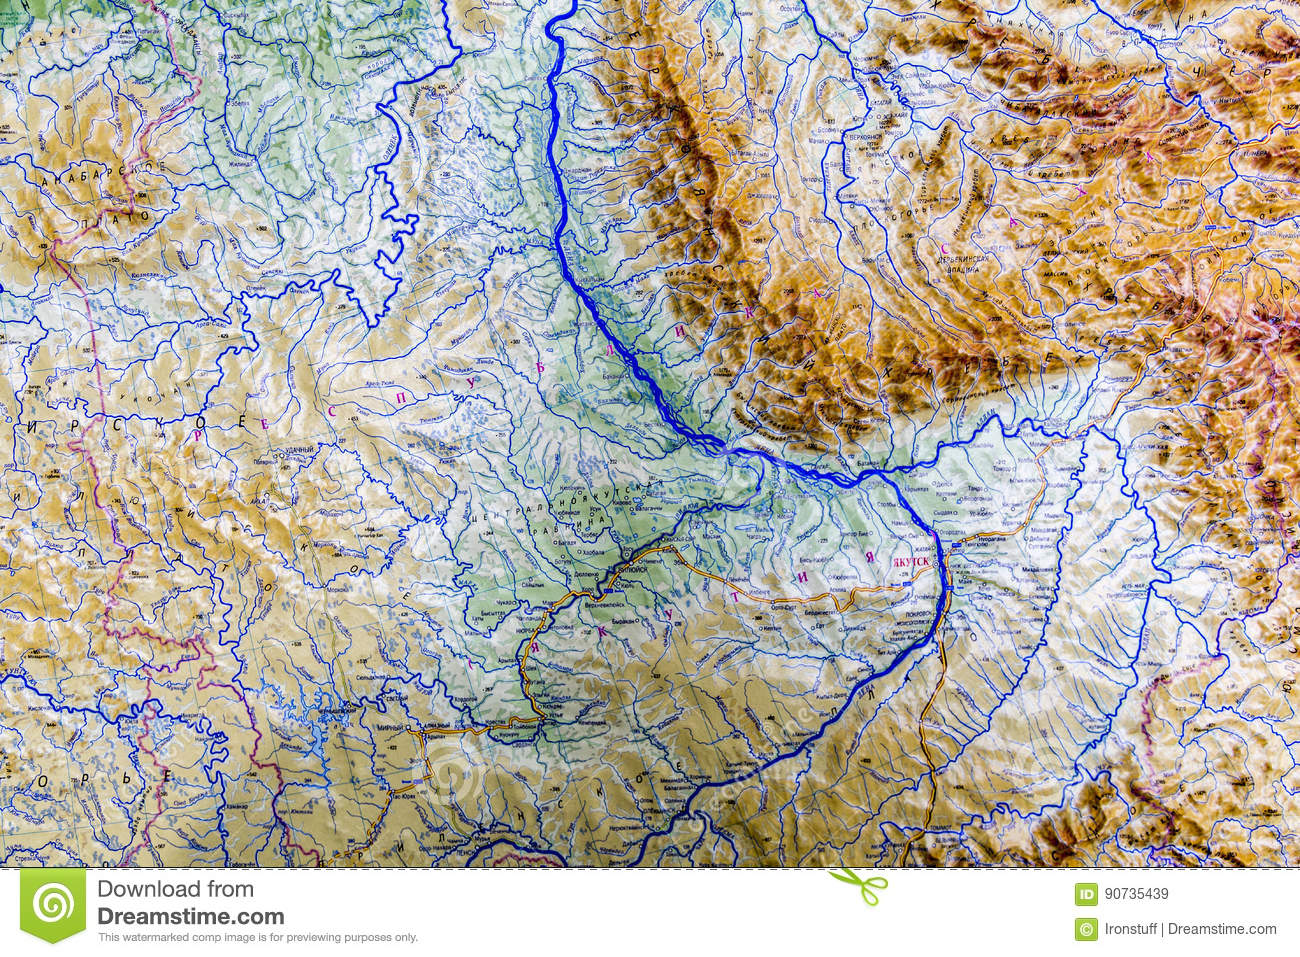 Map Of Russia In Russian.Part Of The Map Of Russia Stock Image Image Of Part 90735439